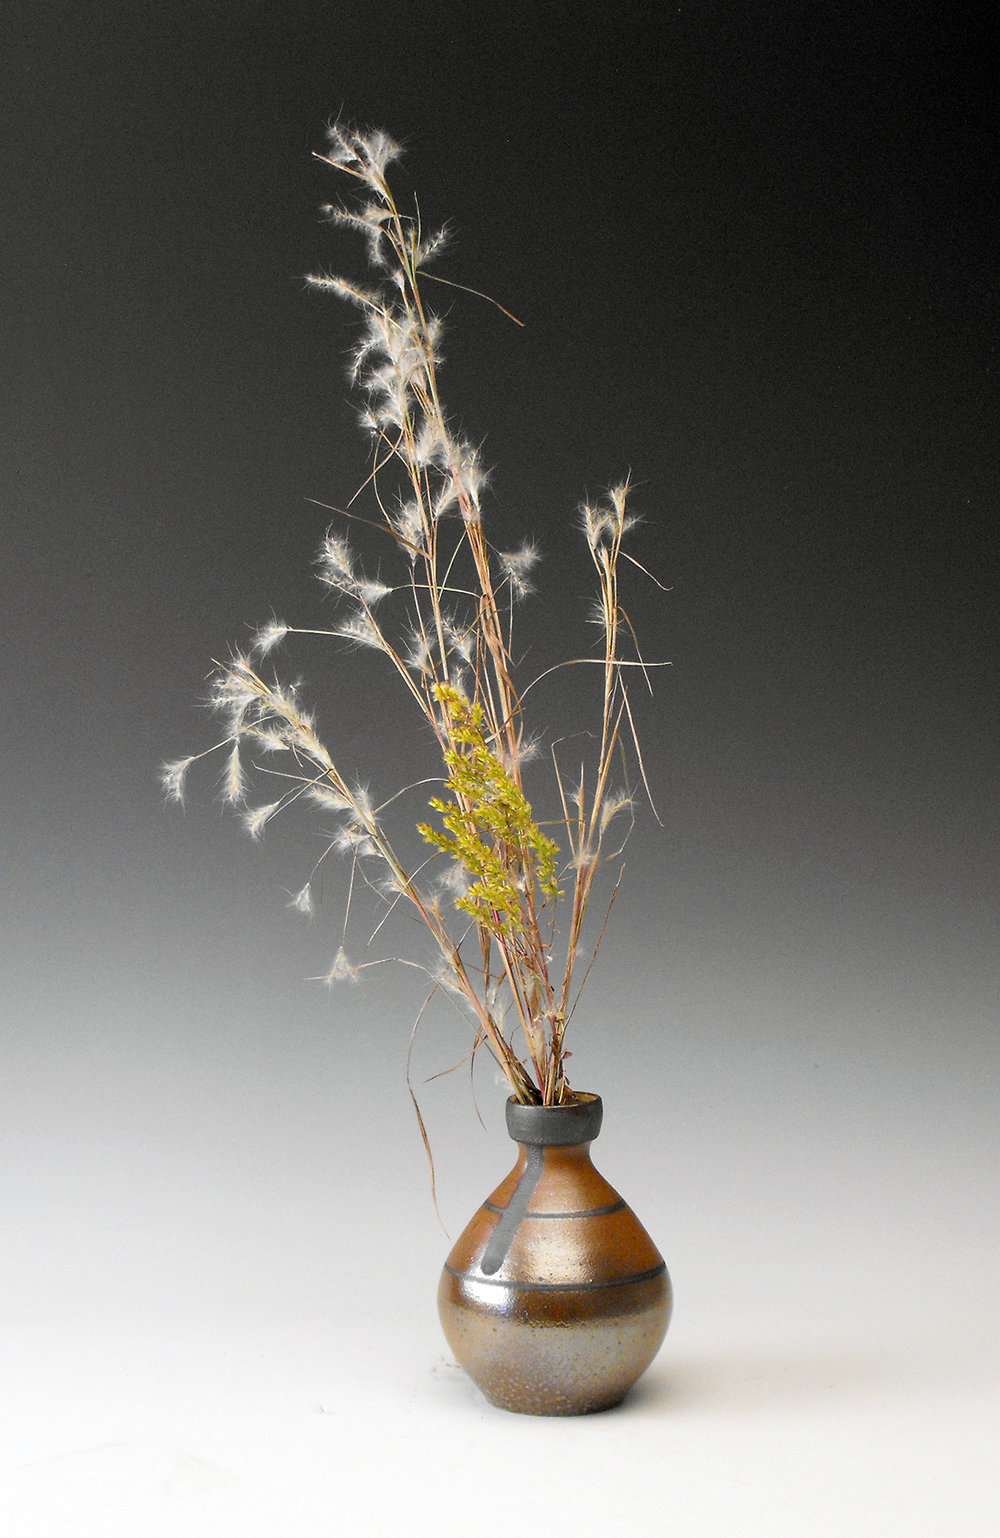 drip bottle with plants.jpg